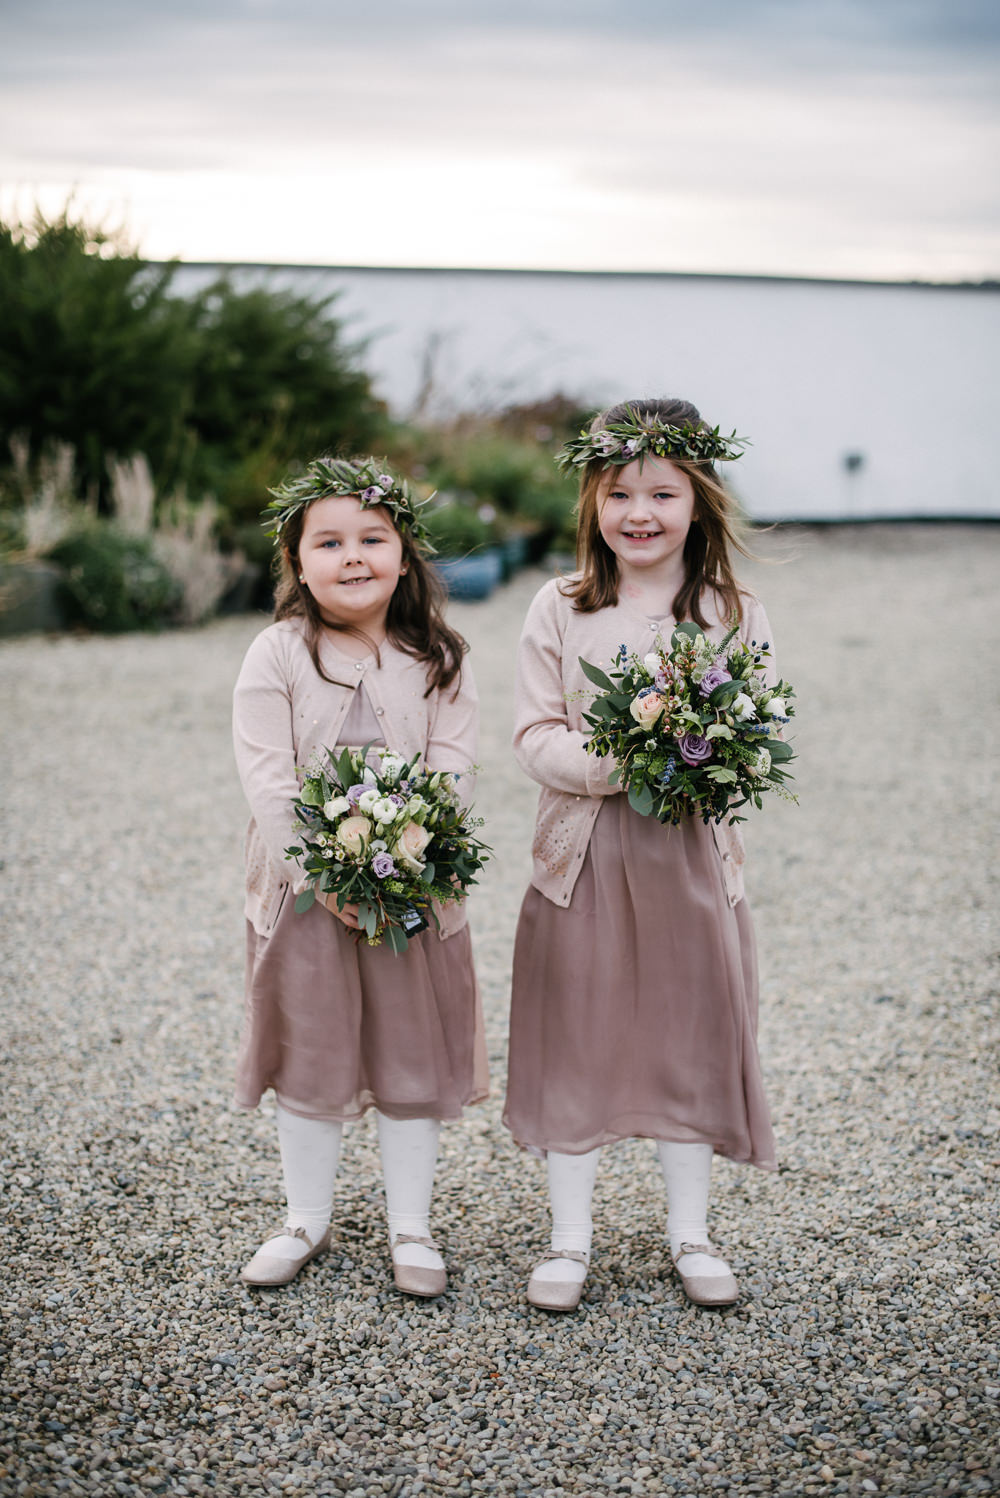 Flower Girls Greenery Crown Bouquets Cardigans Orange Tree House Wedding Winter You Them Us Photography